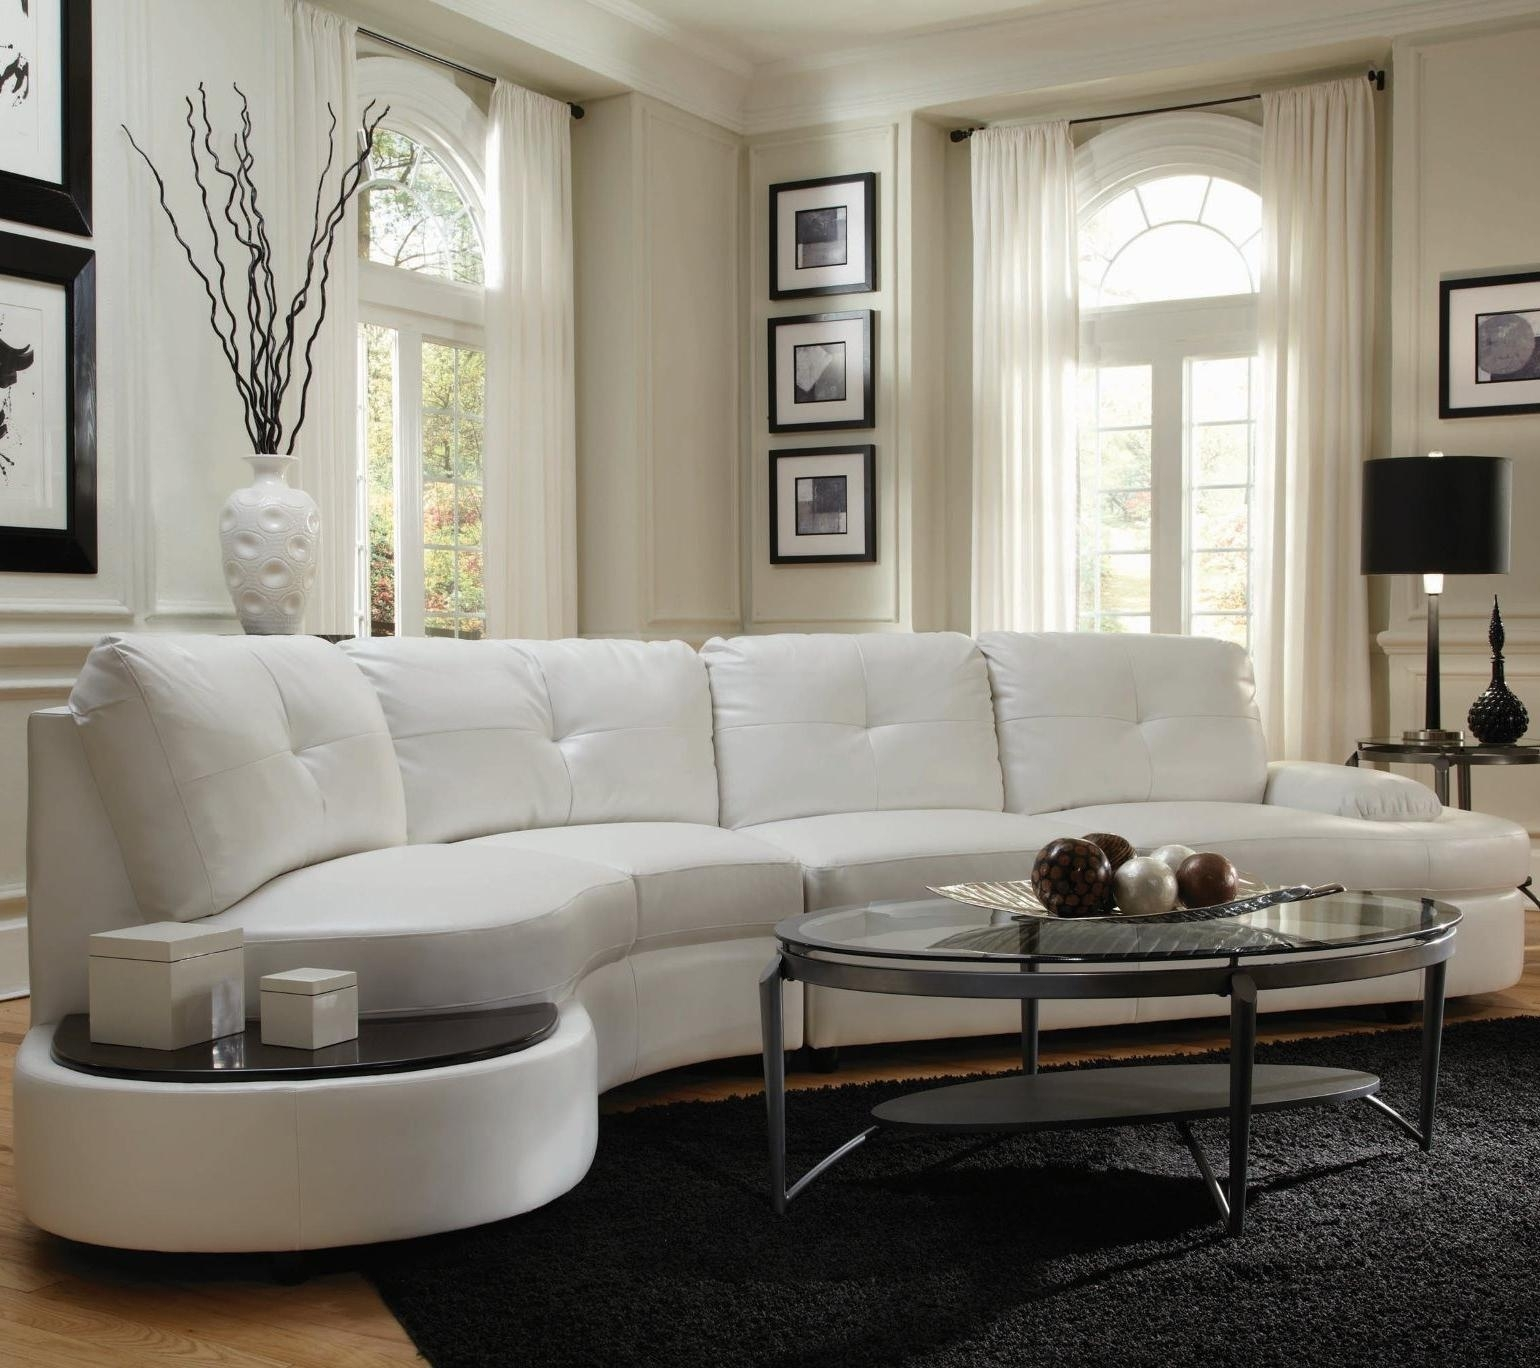 Talia Contemporary Sectional Conversation Sofa With Built In Table Within Contemporary Curves Coffee Tables (View 26 of 30)